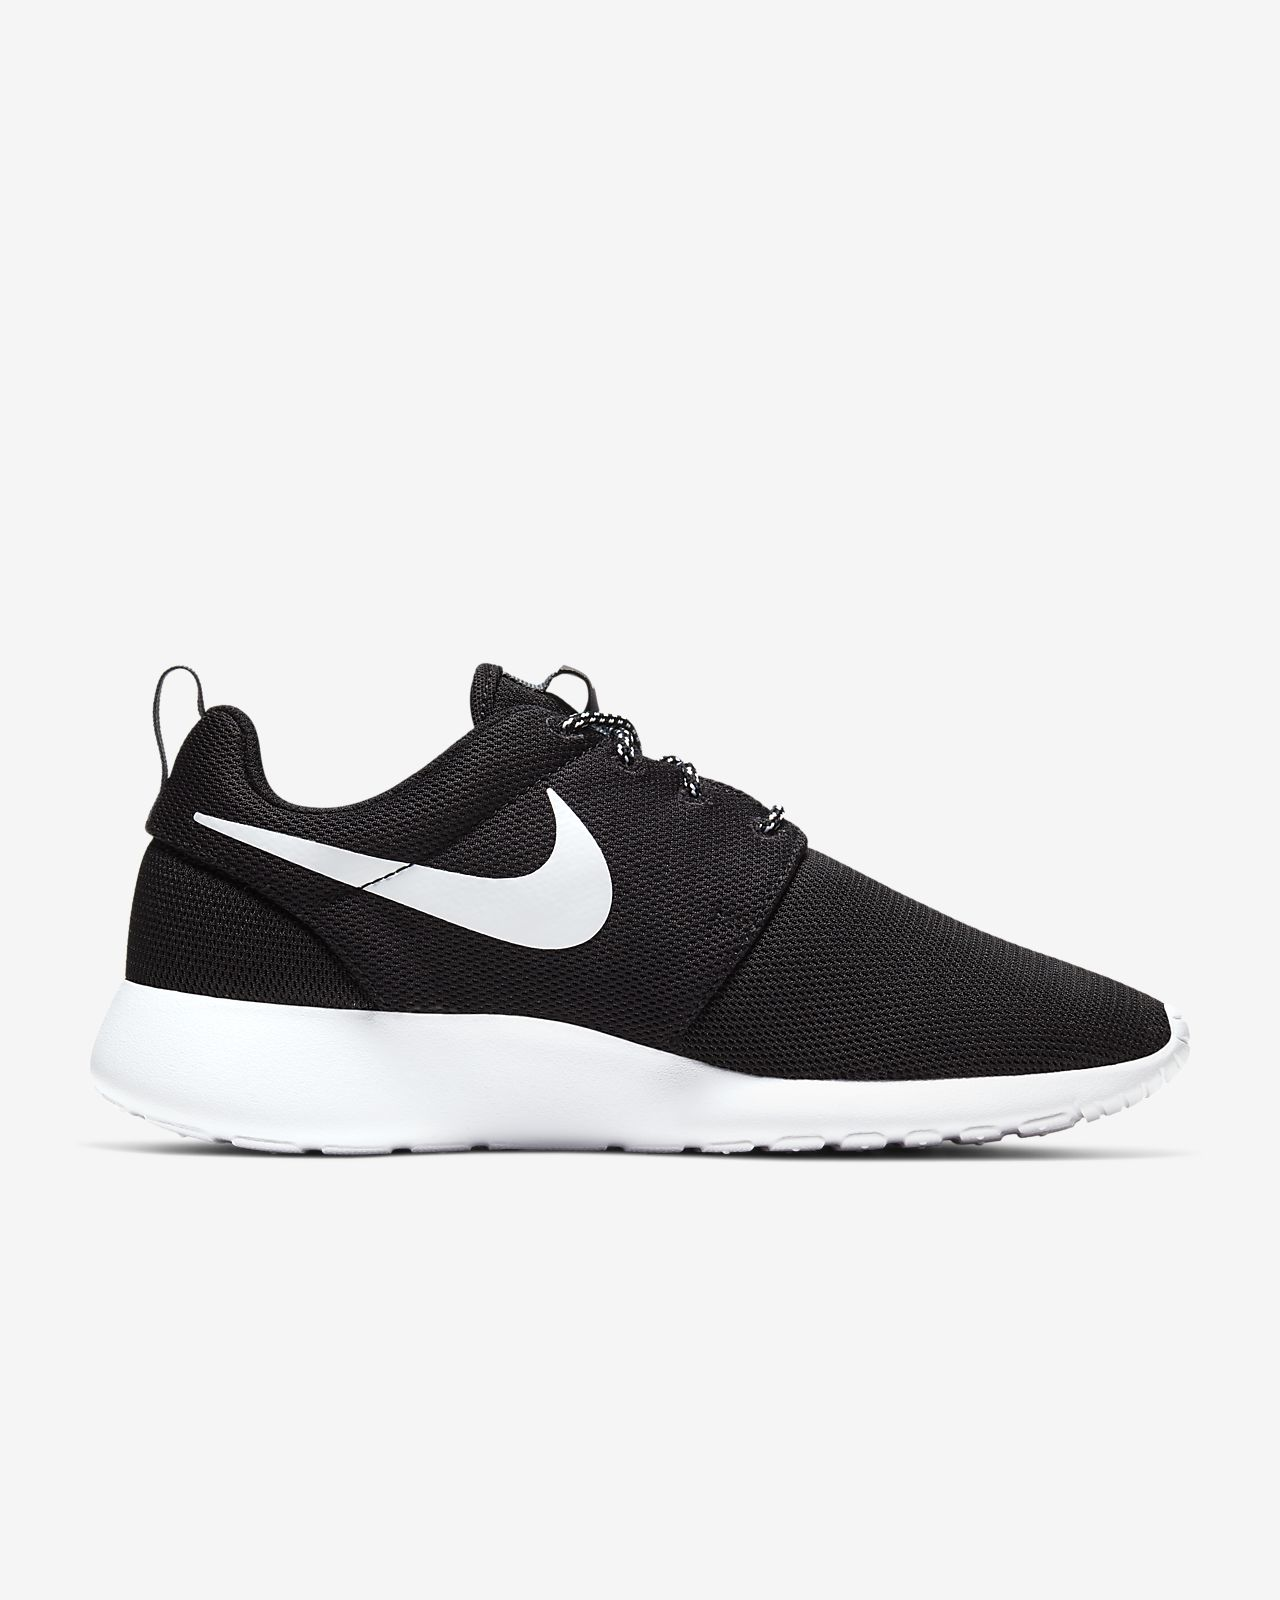 buy online 8bc3c 4e69d ... Nike Roshe One Womens Shoe